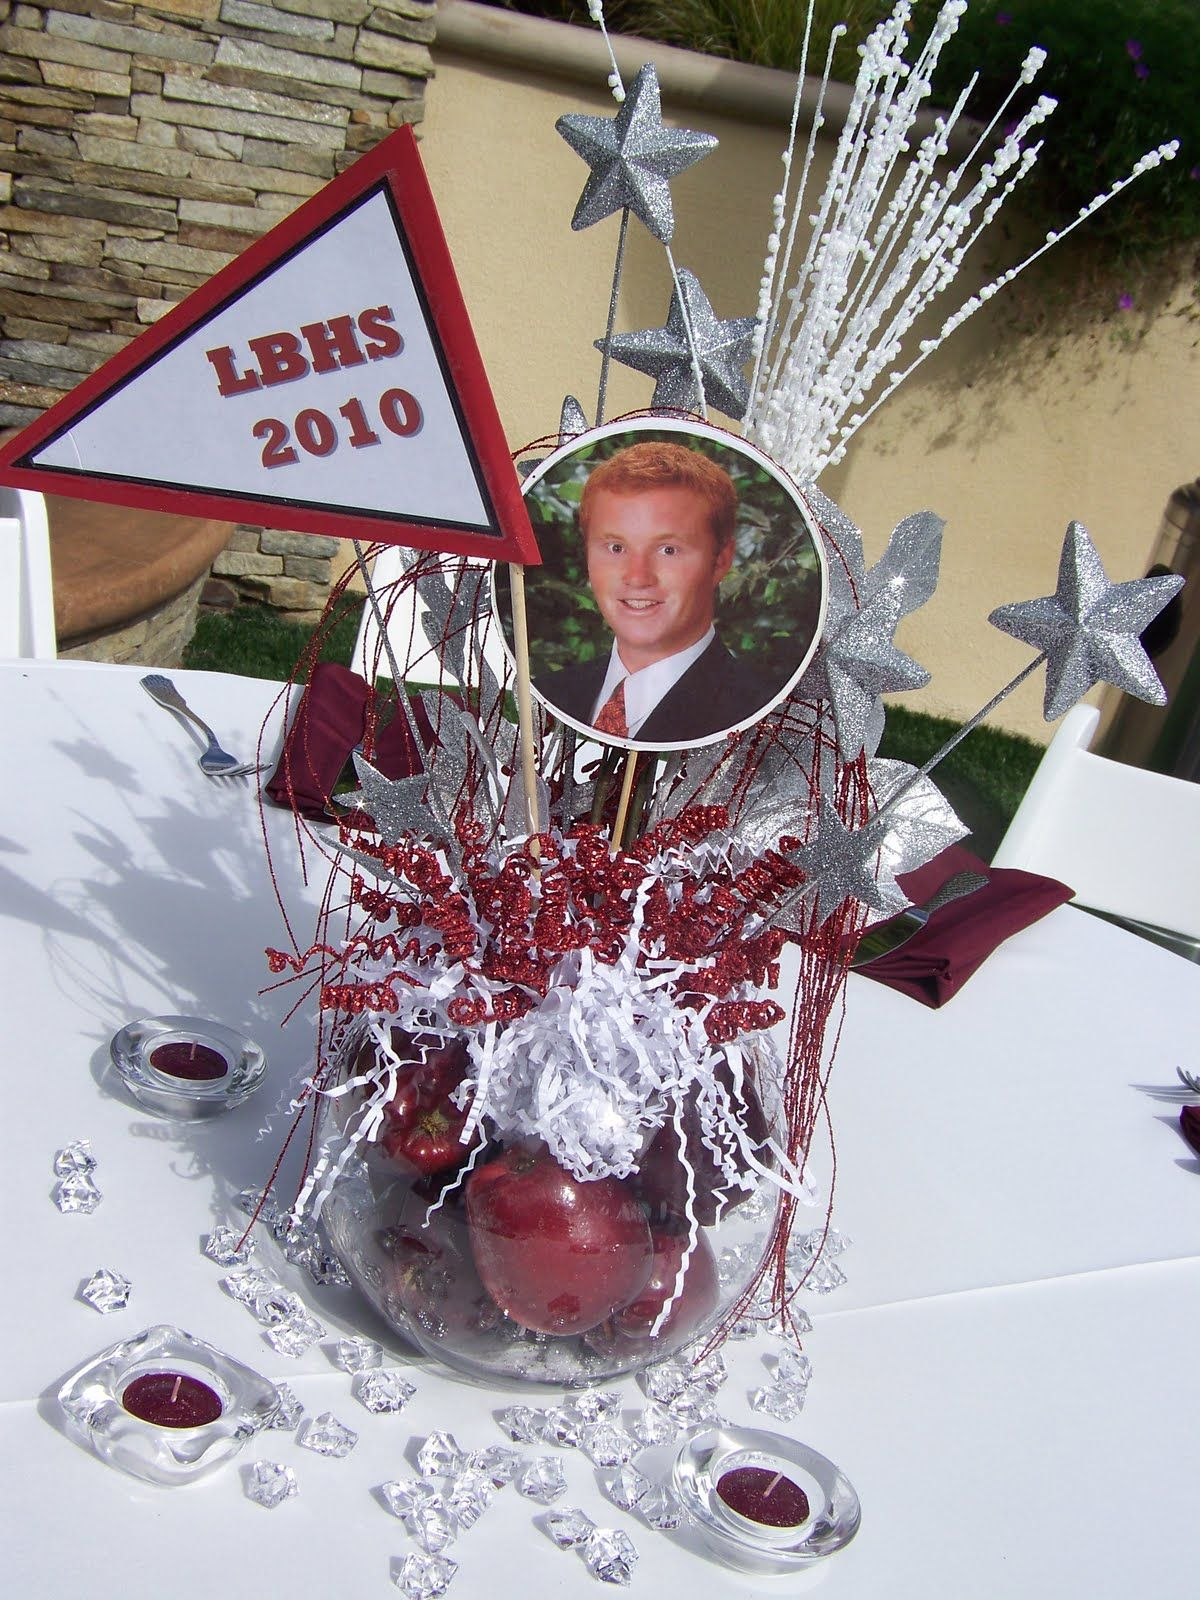 Graduation party centerpiece ideas using photos and school